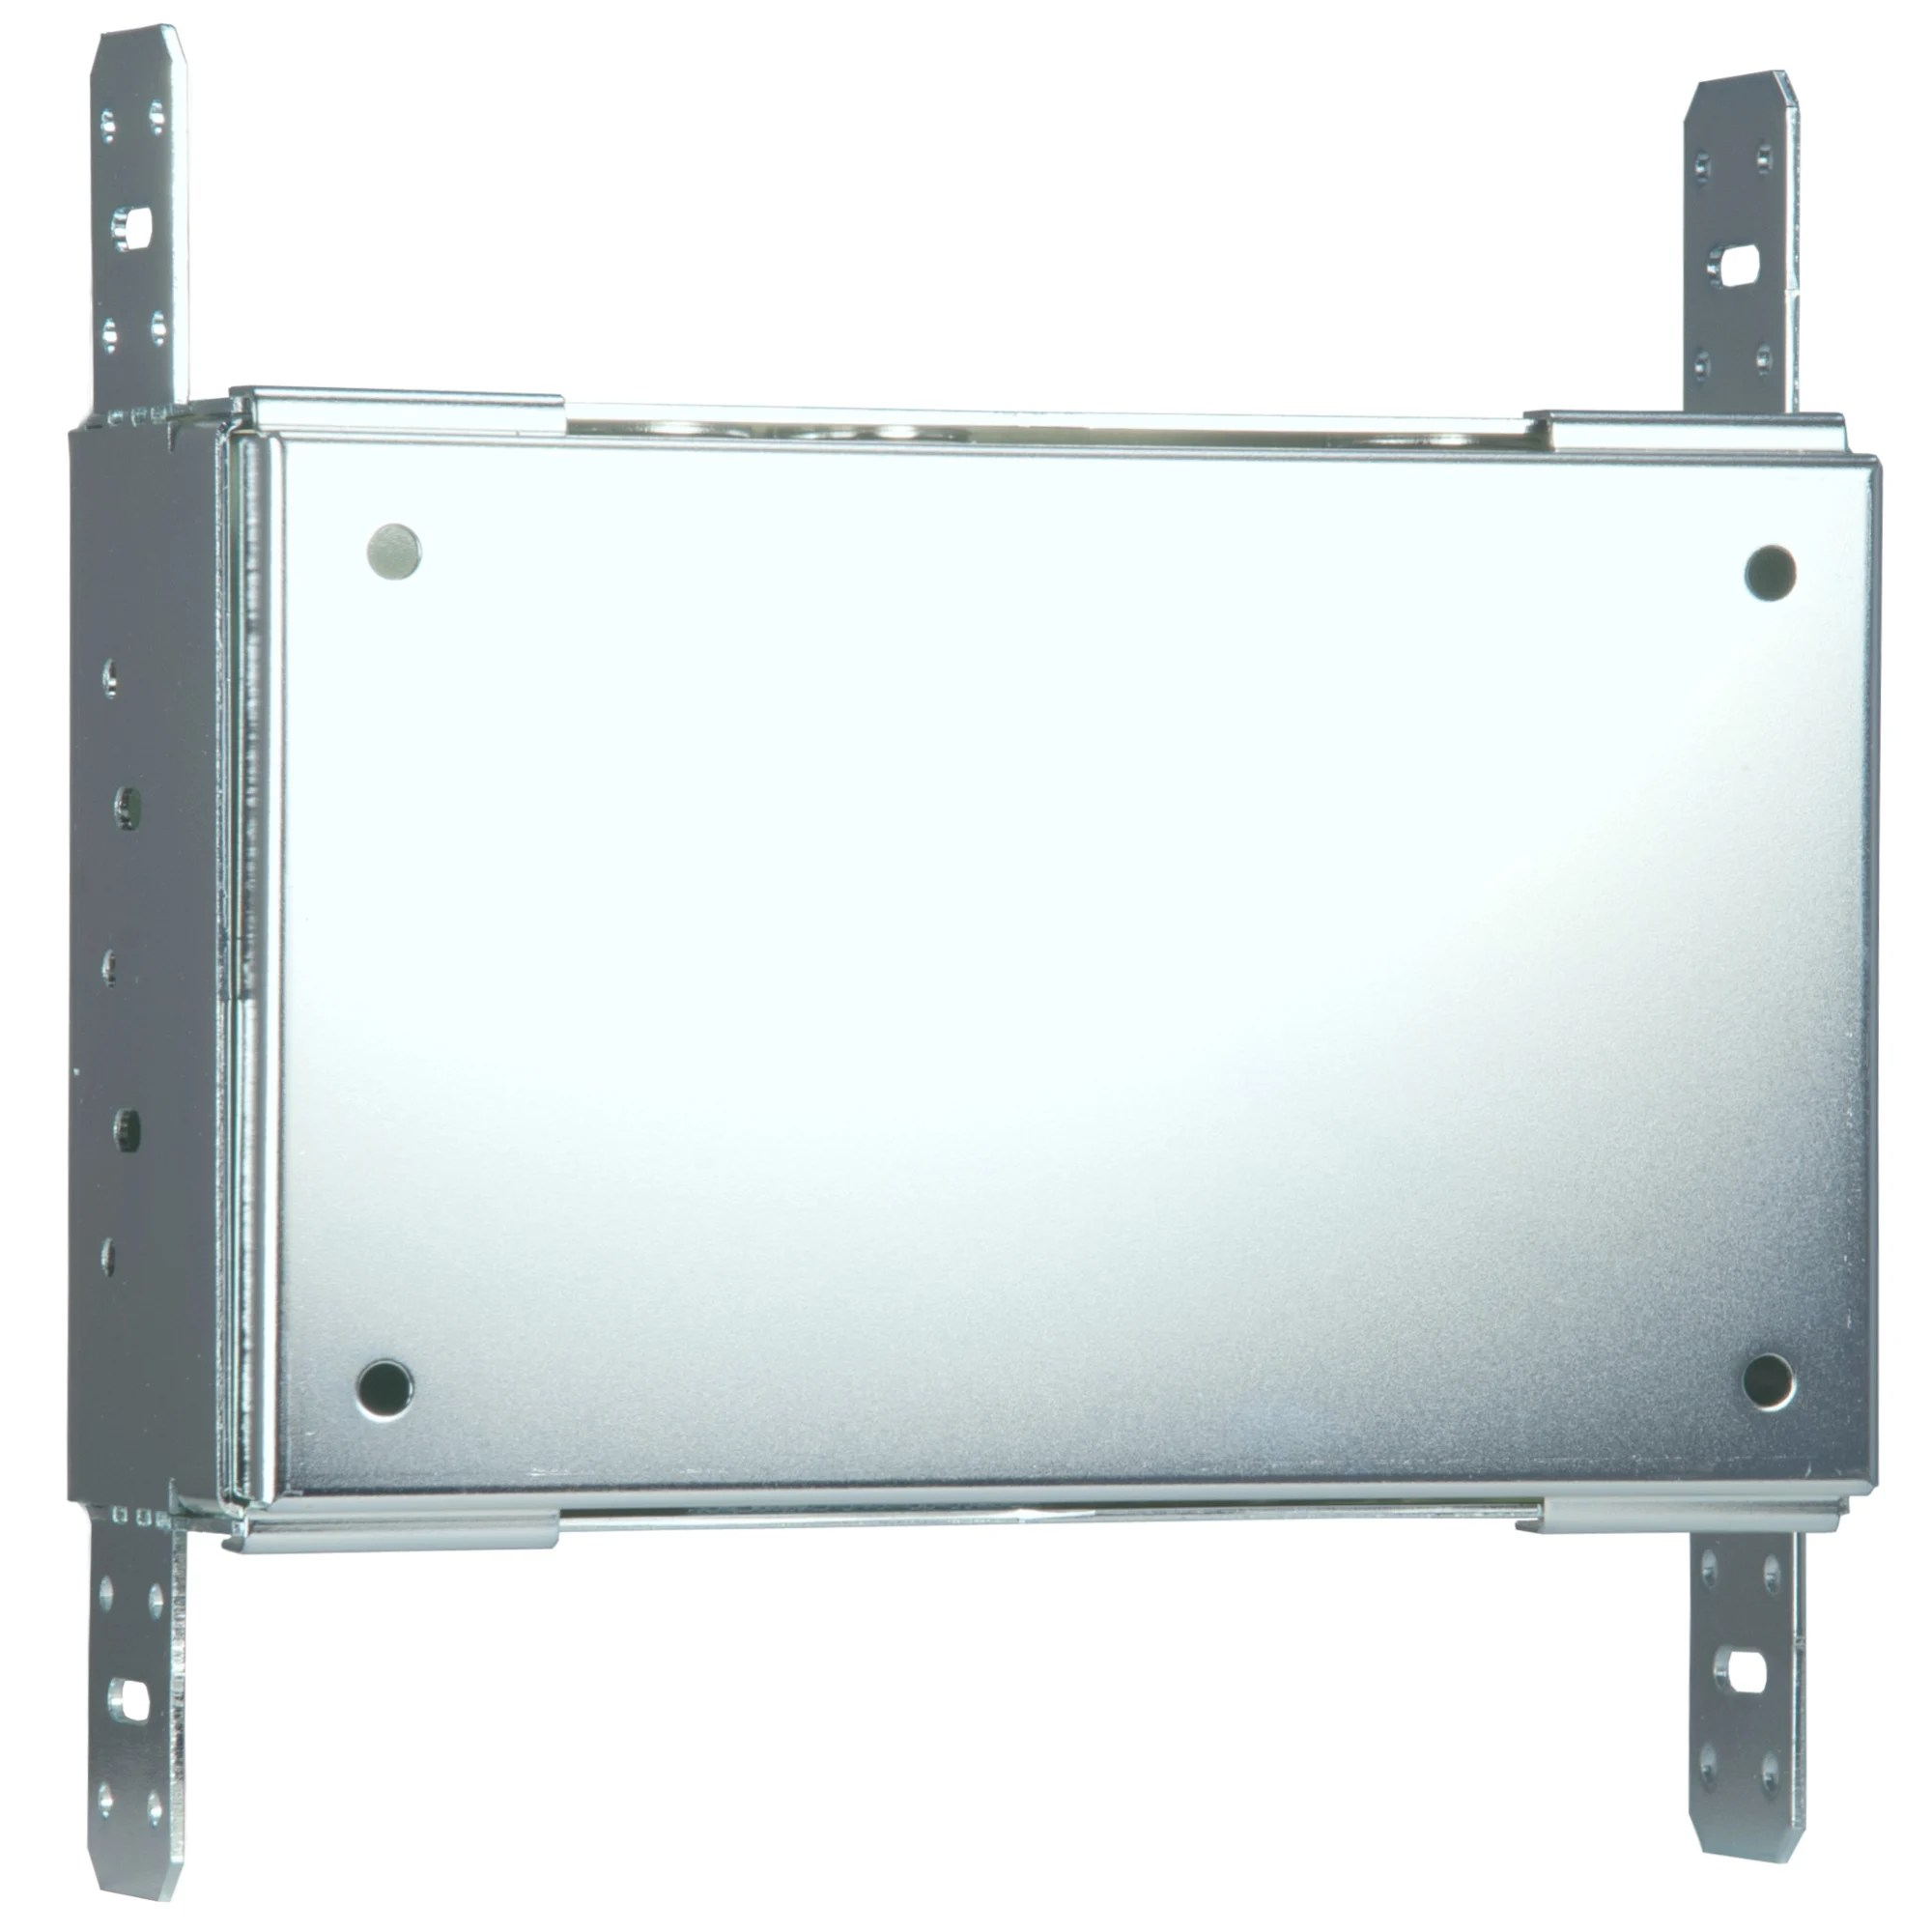 AMX CB MXSA 07 Rough In Box and Cover Plate for 7 Wall